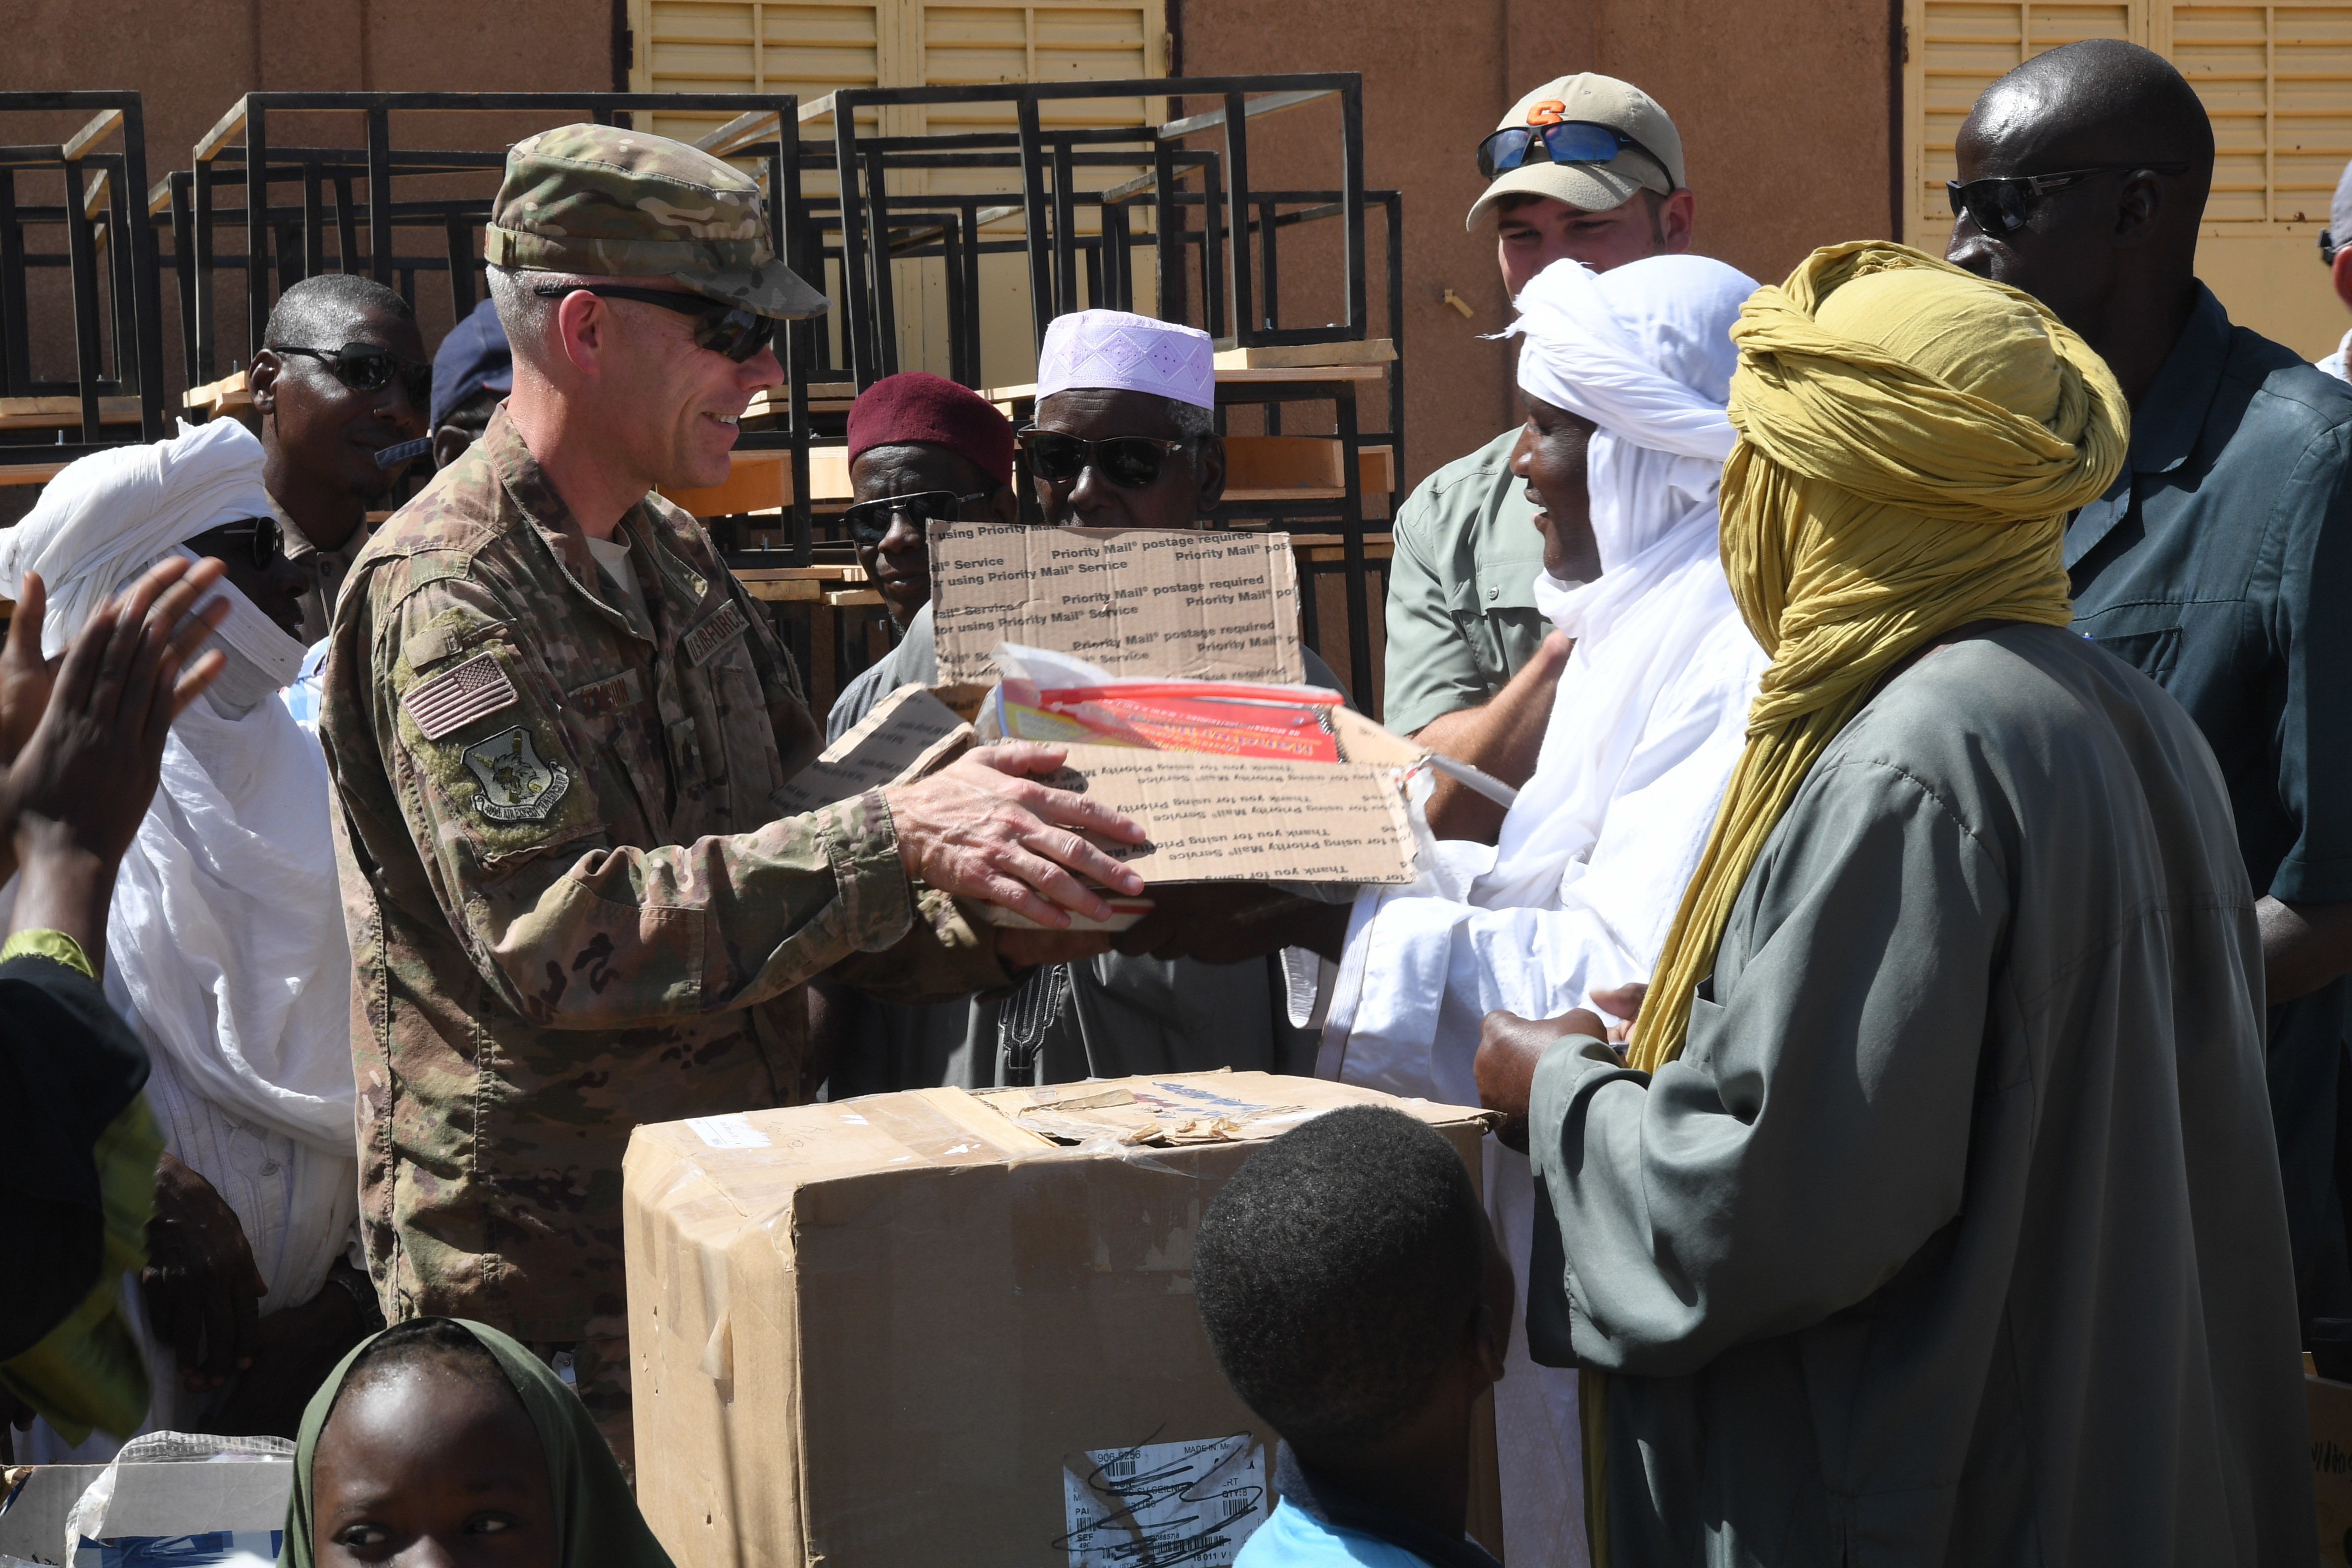 U.S. Air Force Lt. Col. Francis Tyson, 724th Expeditionary Air Base Squadron commander, presents a box of donated supplies to Ahmed Kosa, Agadez second vice mayor, during a ceremony in Agadez, Niger, Oct. 23, 2018. The ceremony recognized the first delivery of 1,000 desks that will be distributed to schools in the Agadez region. A donation of coloring books, writing utensils, paper, and other items gathered by the military community were also presented to the school. (U.S. Air Force photo by Tech. Sgt. Rachelle Coleman)